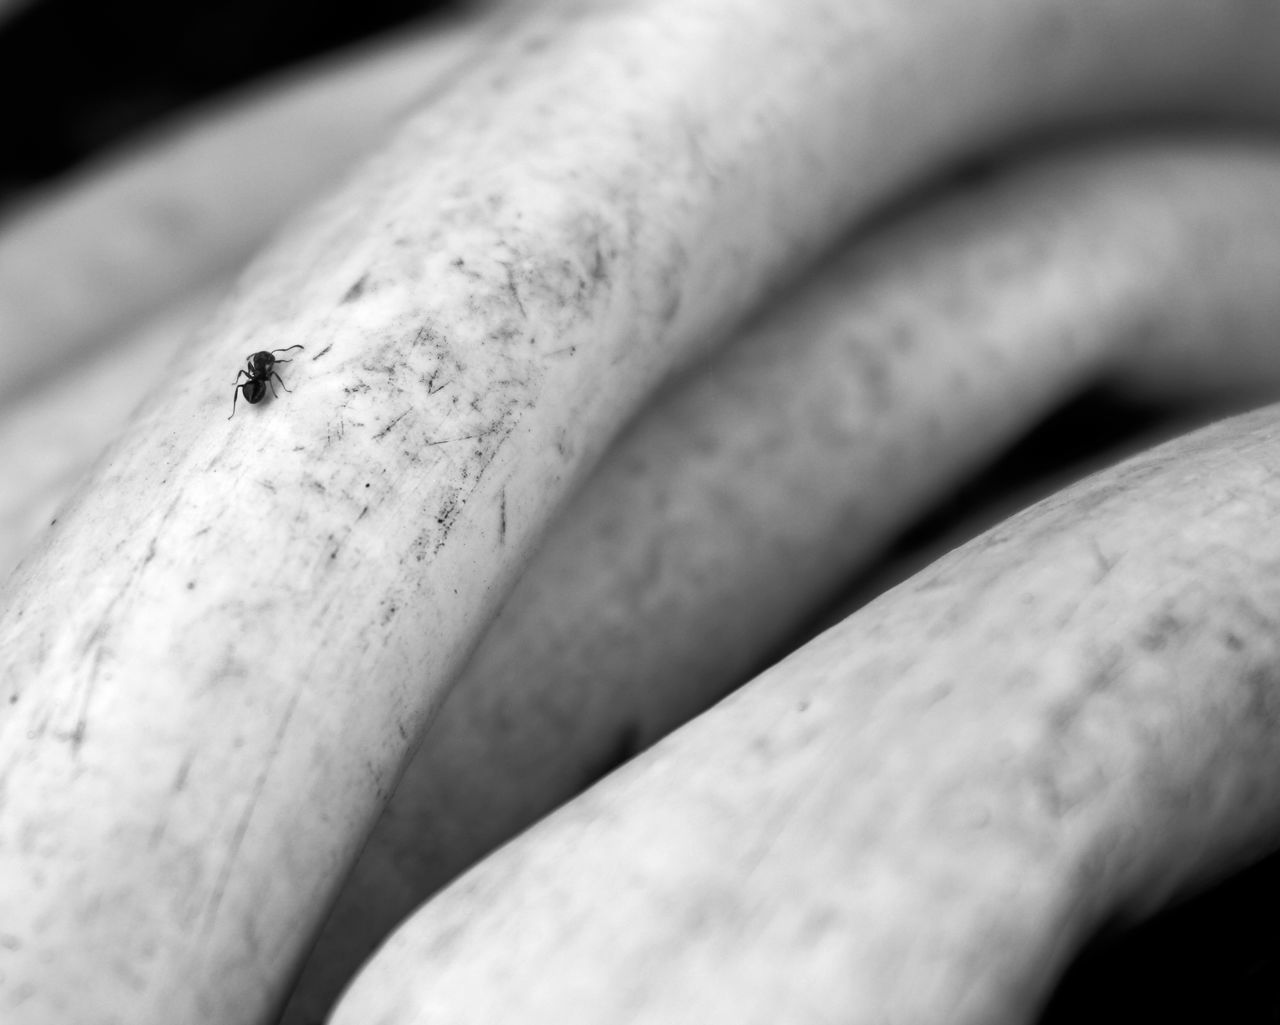 Close-Up Of Ant On Hose